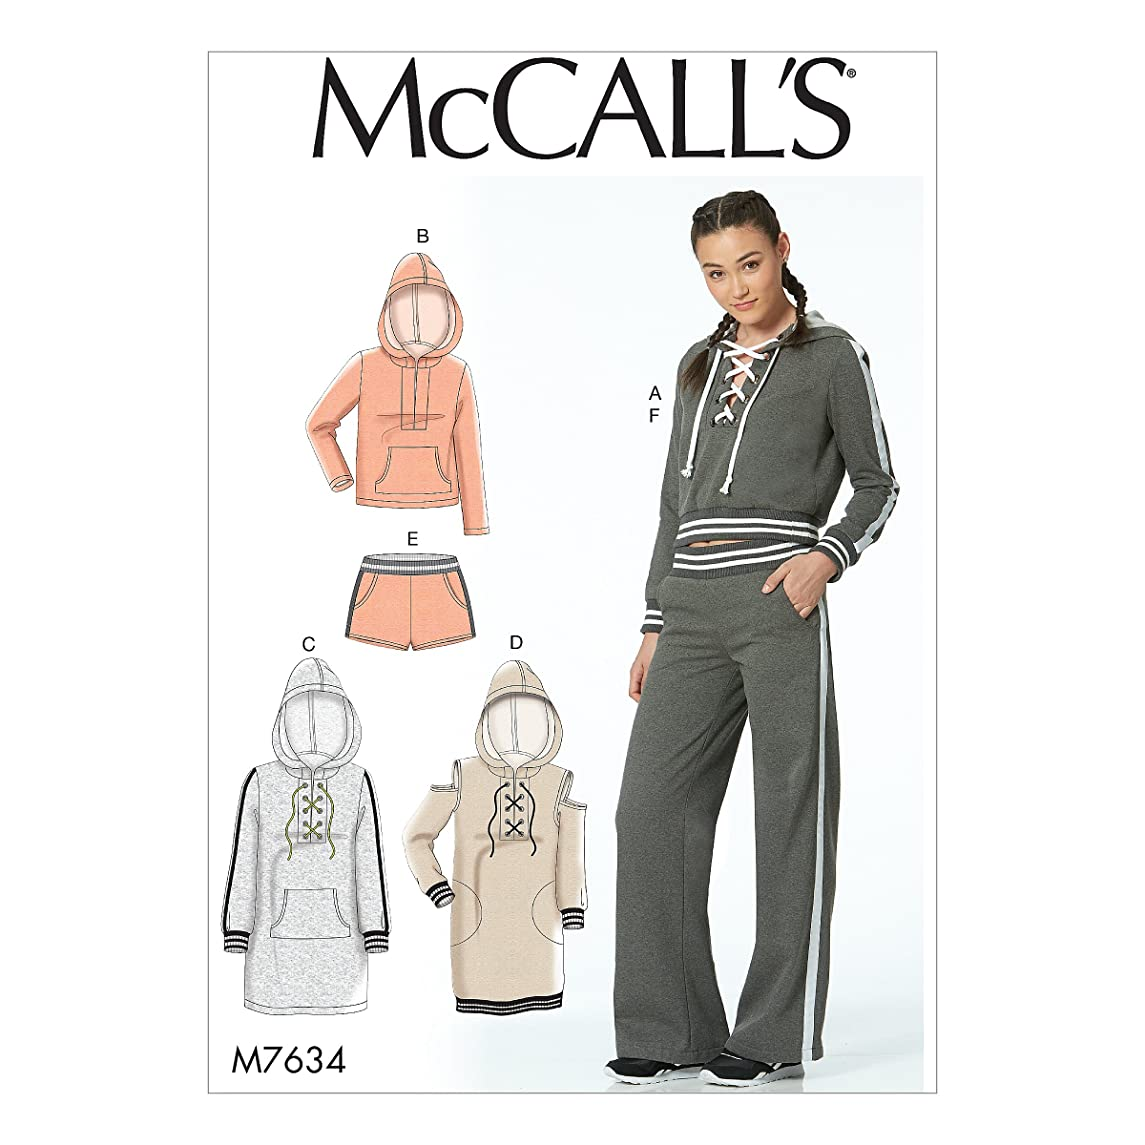 McCall Patterns M7634AX5 Misses Knit Tops/Dresses/Shorts and Pants